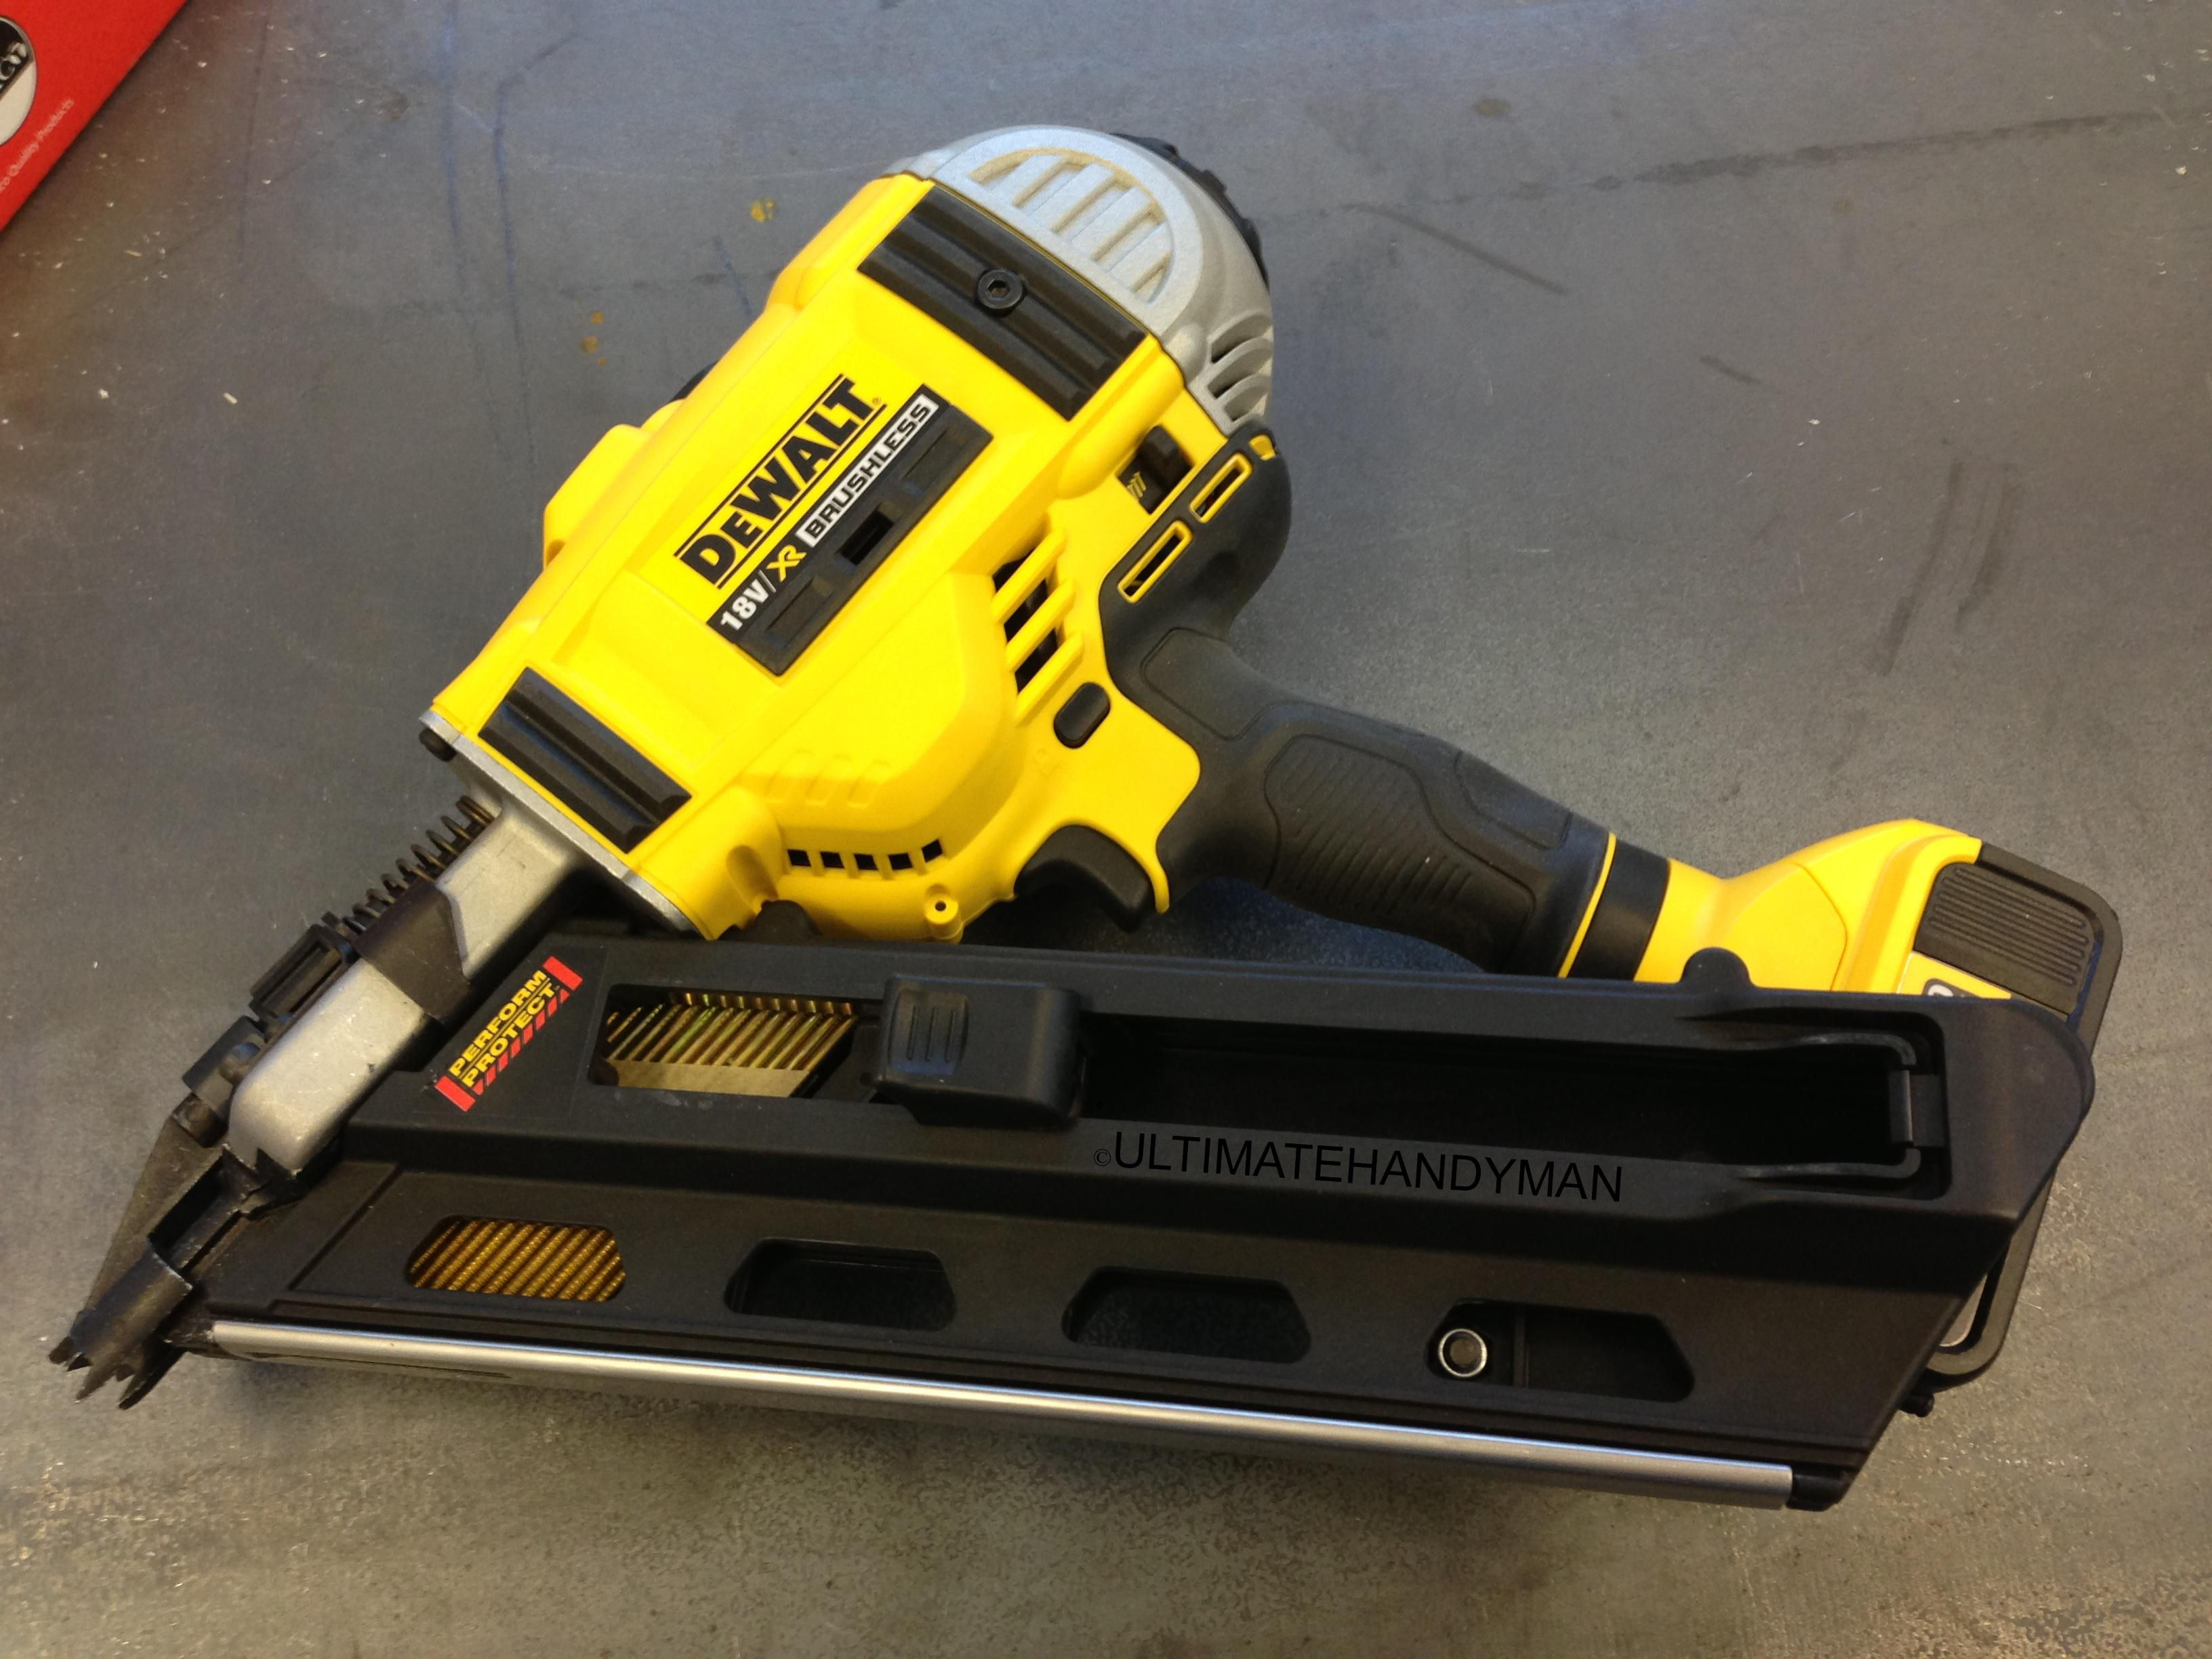 nail guns pose unexpected injury risk